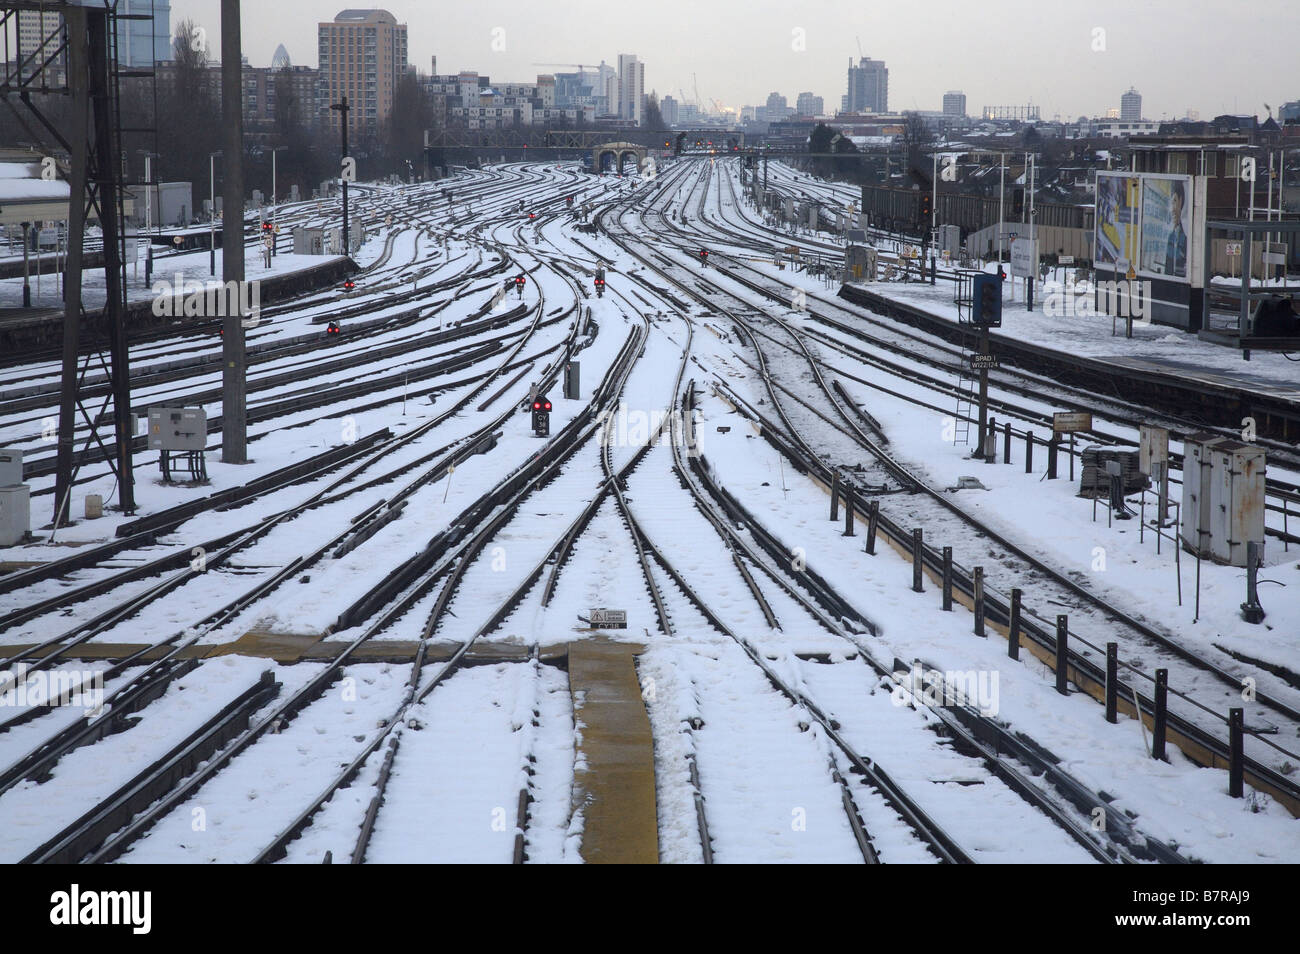 Snow on railway lines, Clapham Junction, south London, UK - Stock Image